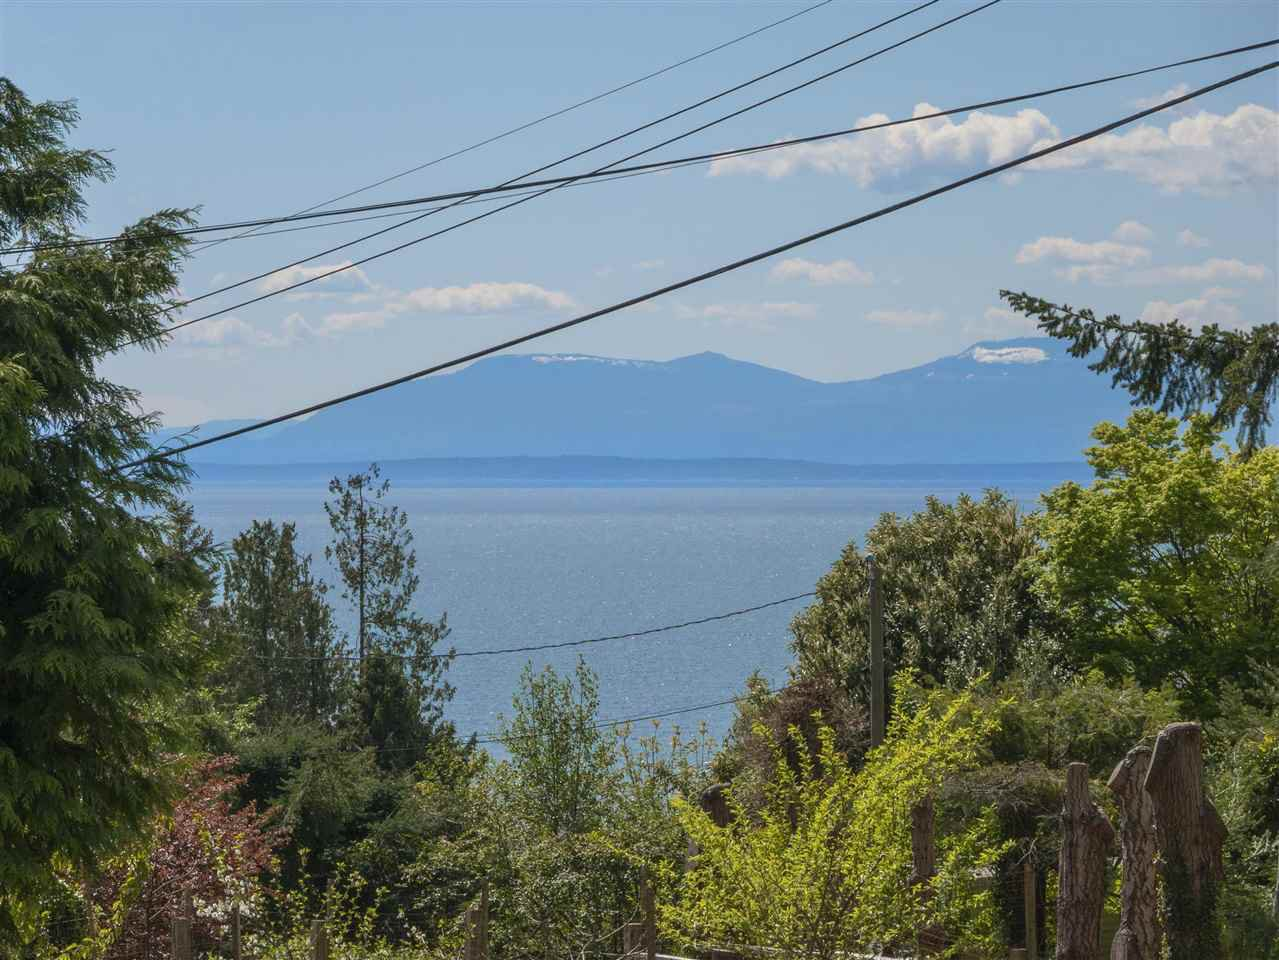 Main Photo: 152 MAHAN Road in Gibsons: Gibsons & Area House for sale (Sunshine Coast)  : MLS®# R2364449